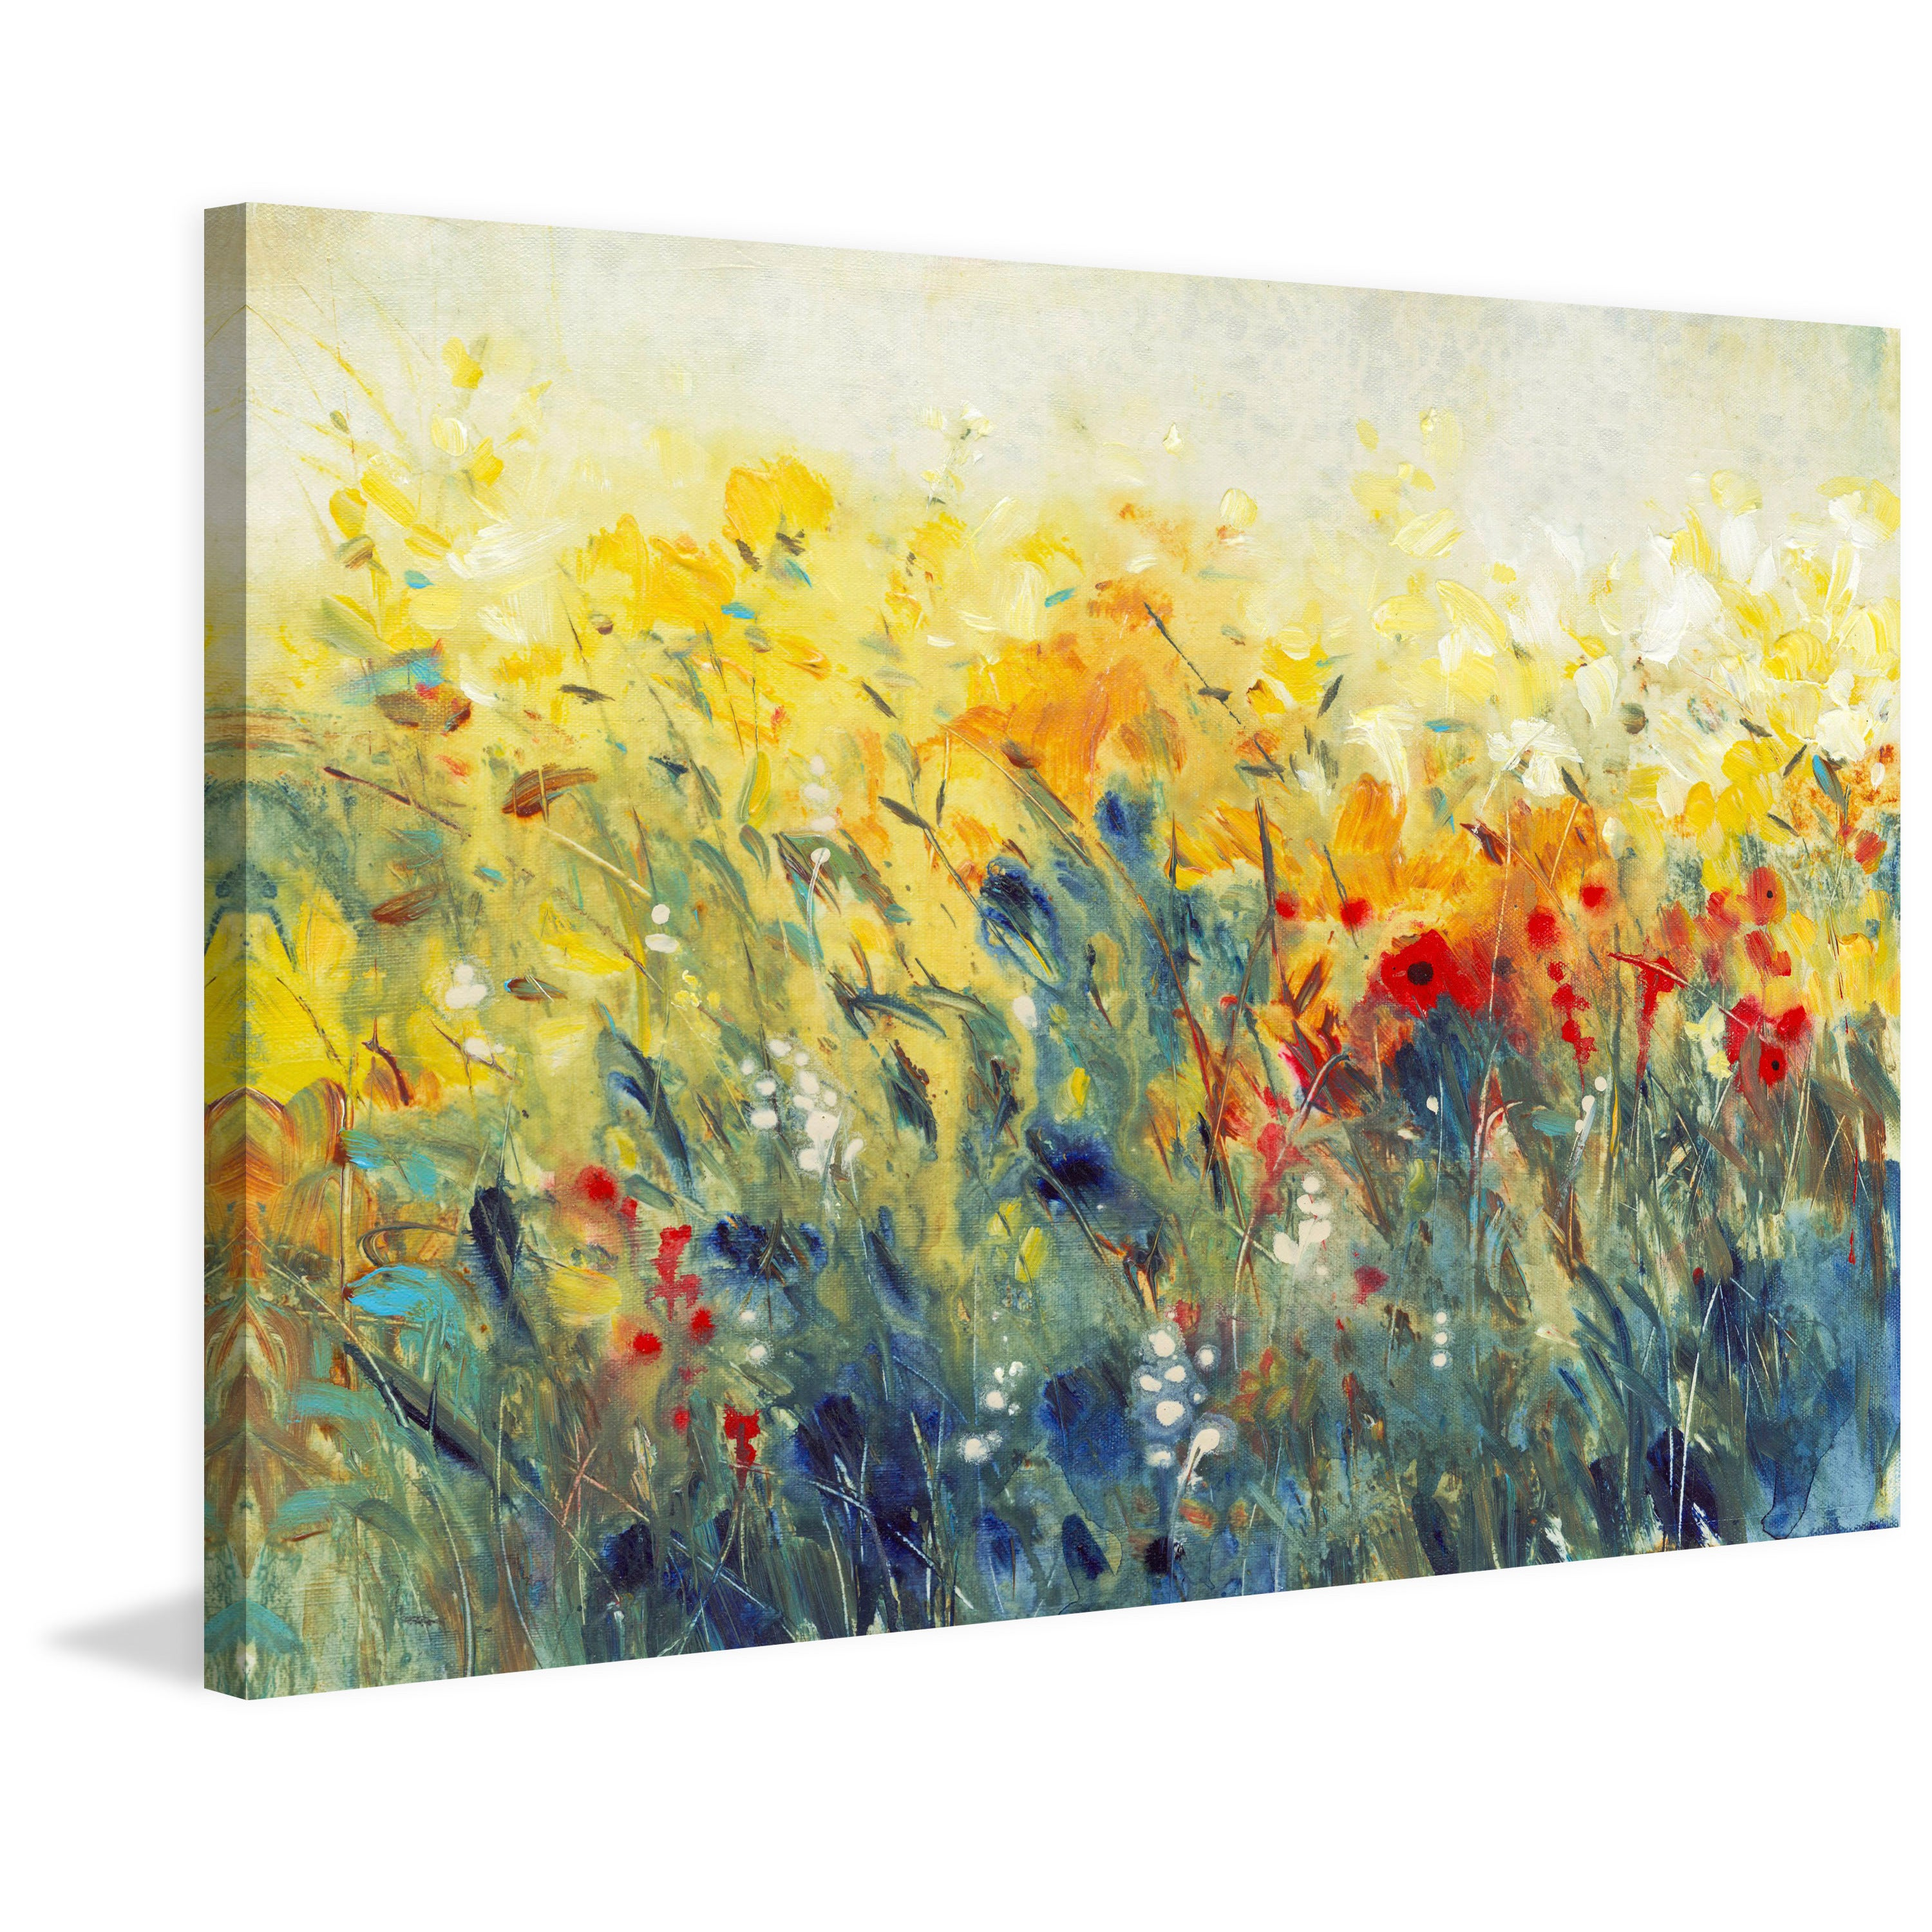 Art Prints | Find Great Art Gallery Deals Shopping at Overstock.com